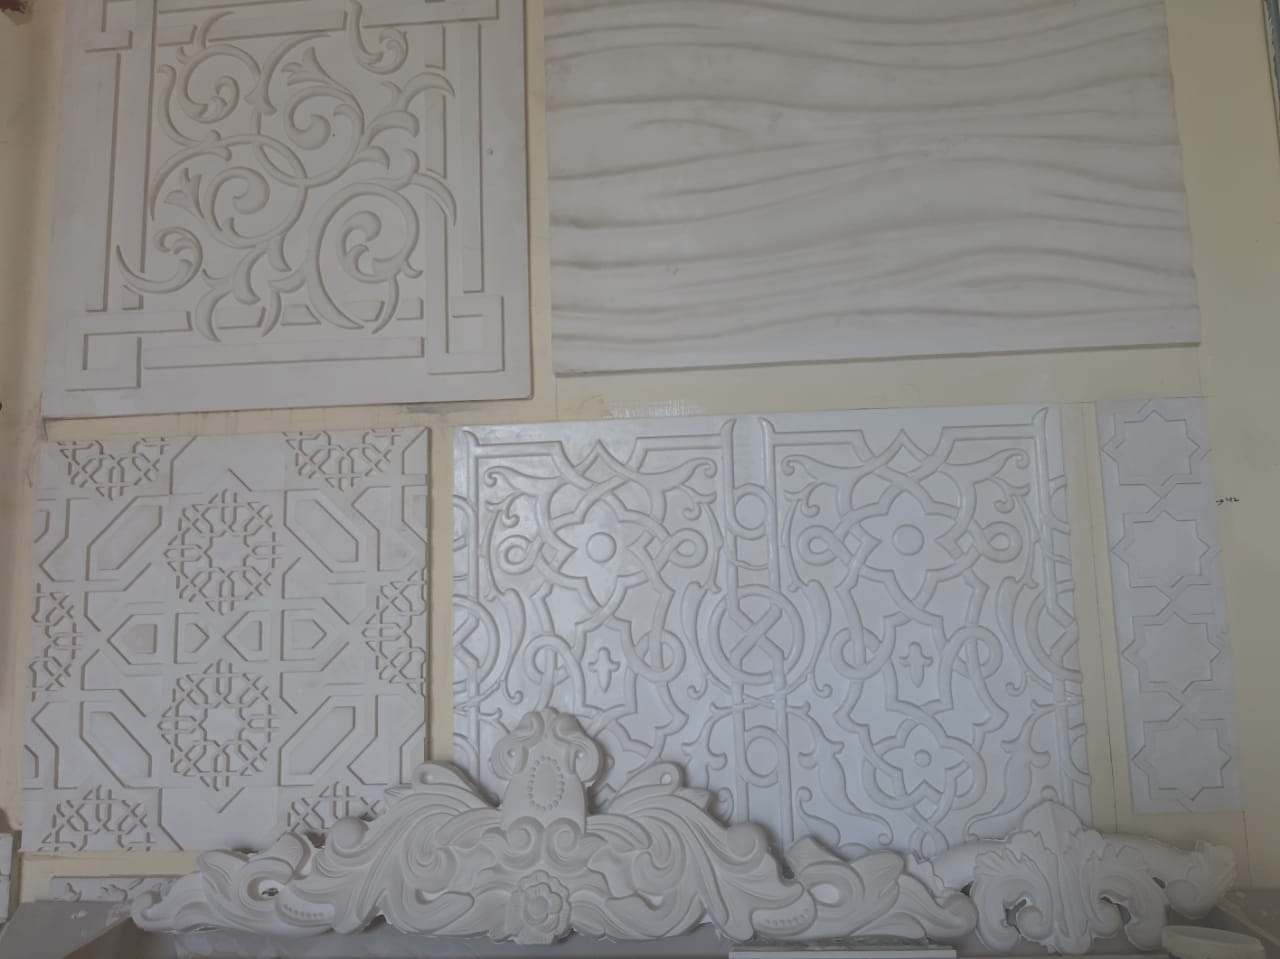 GRG (Glass Fiber Reinforced Gypsum)